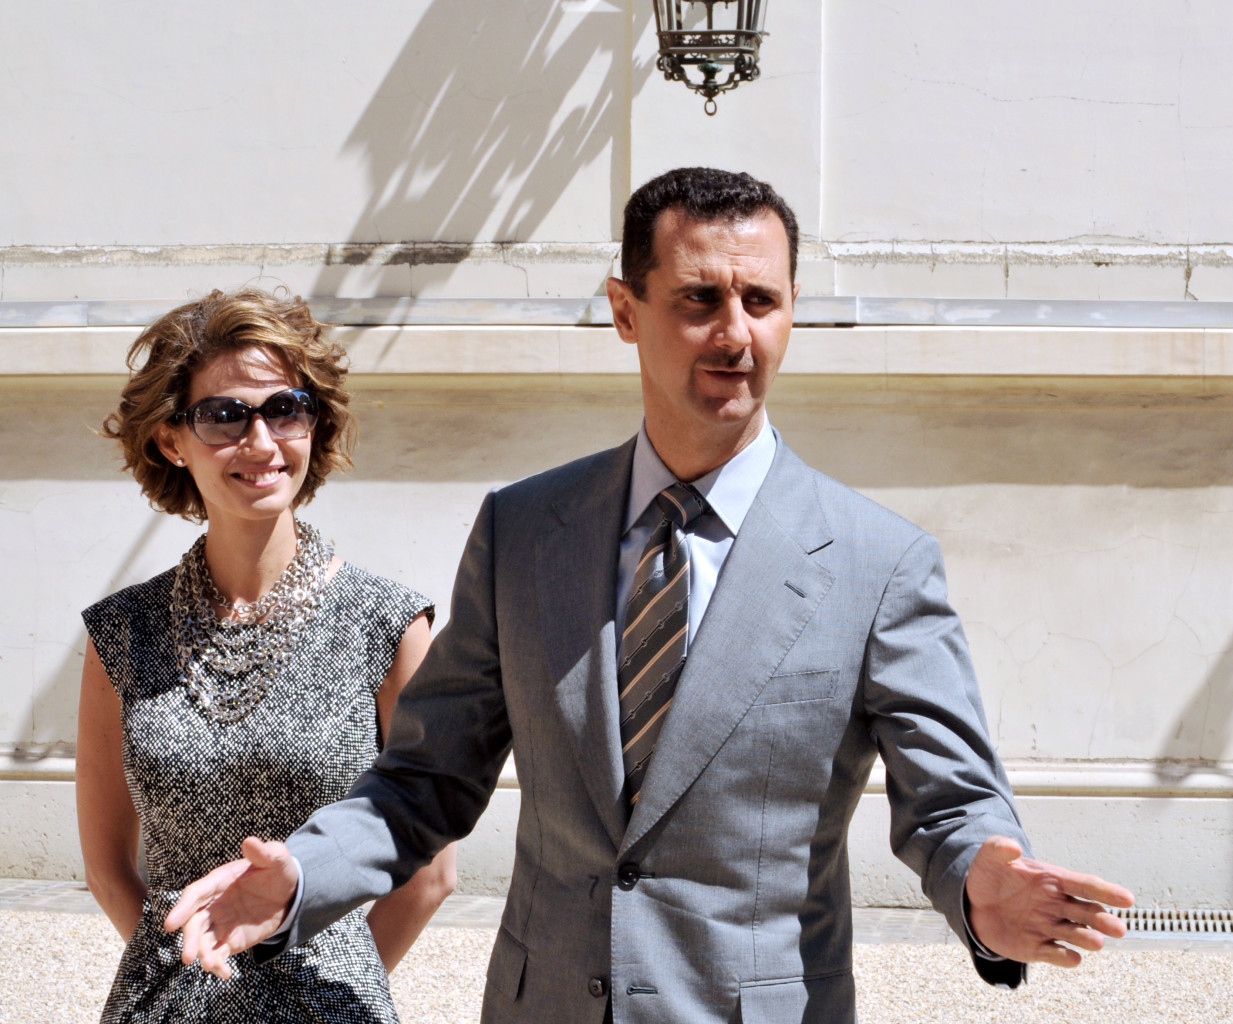 The War Has Arrived Inside the Assad Family - Geopolitica.info